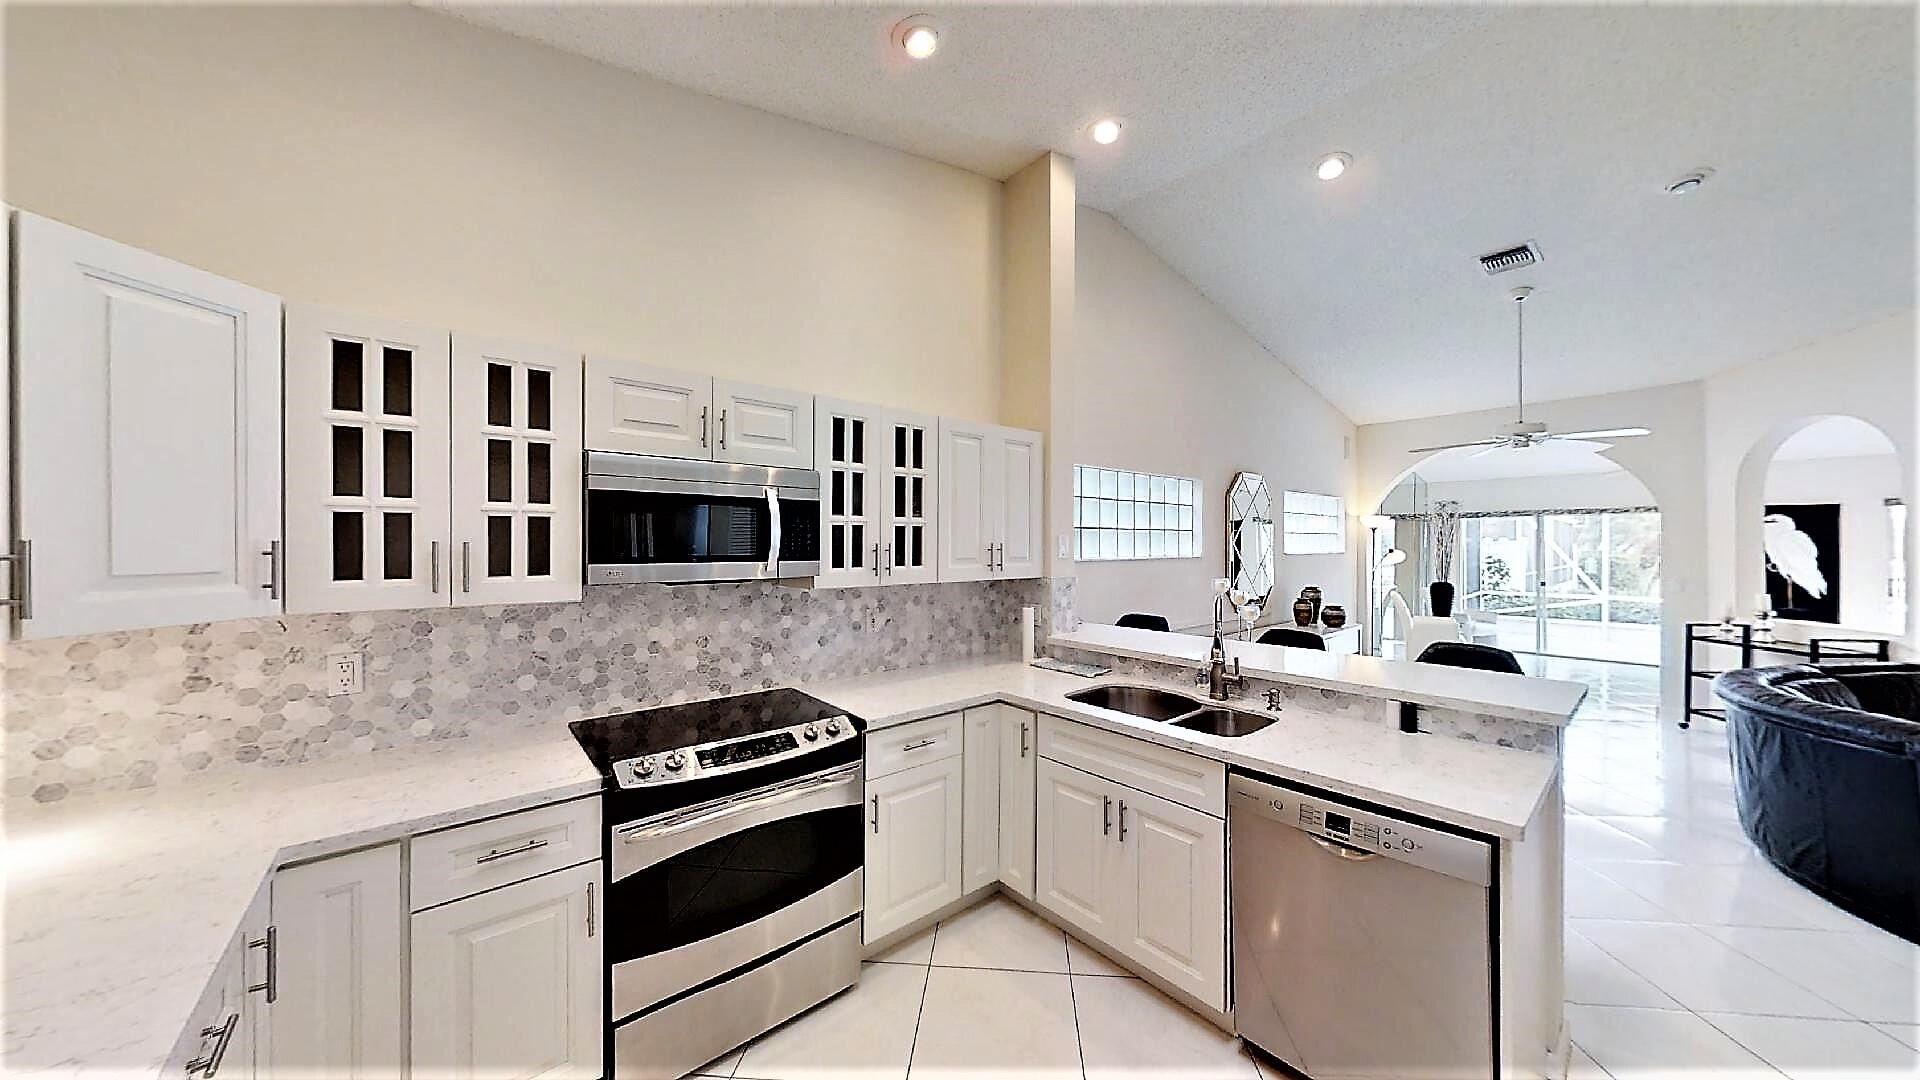 7945 Sailing Shores Terrace, Boynton Beach, FL 33473 - MLS#: RX-10703067